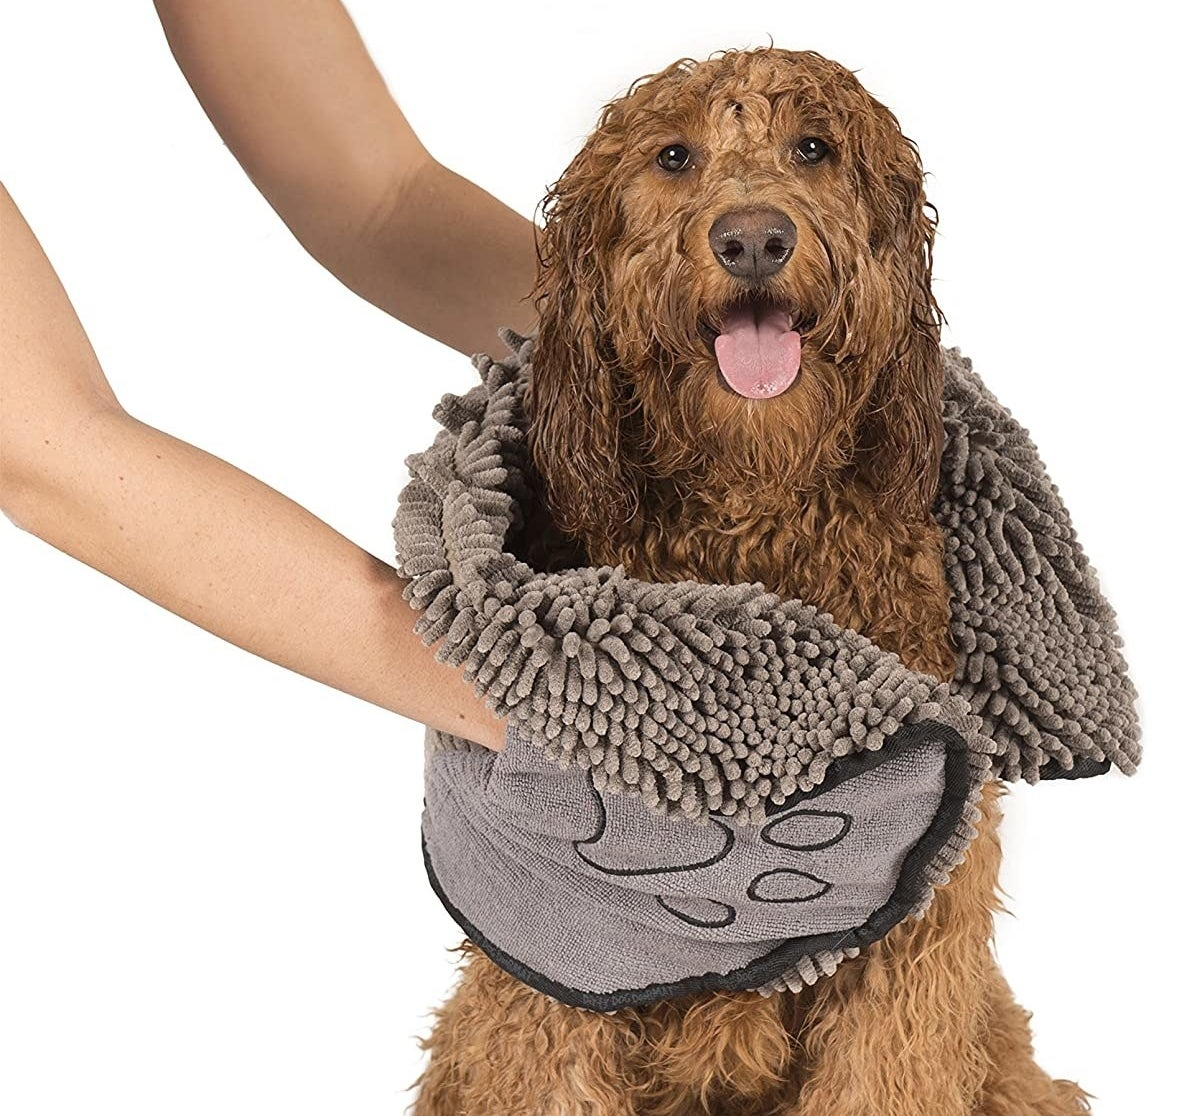 Model's hands using the shaggy towel to dry off a dog